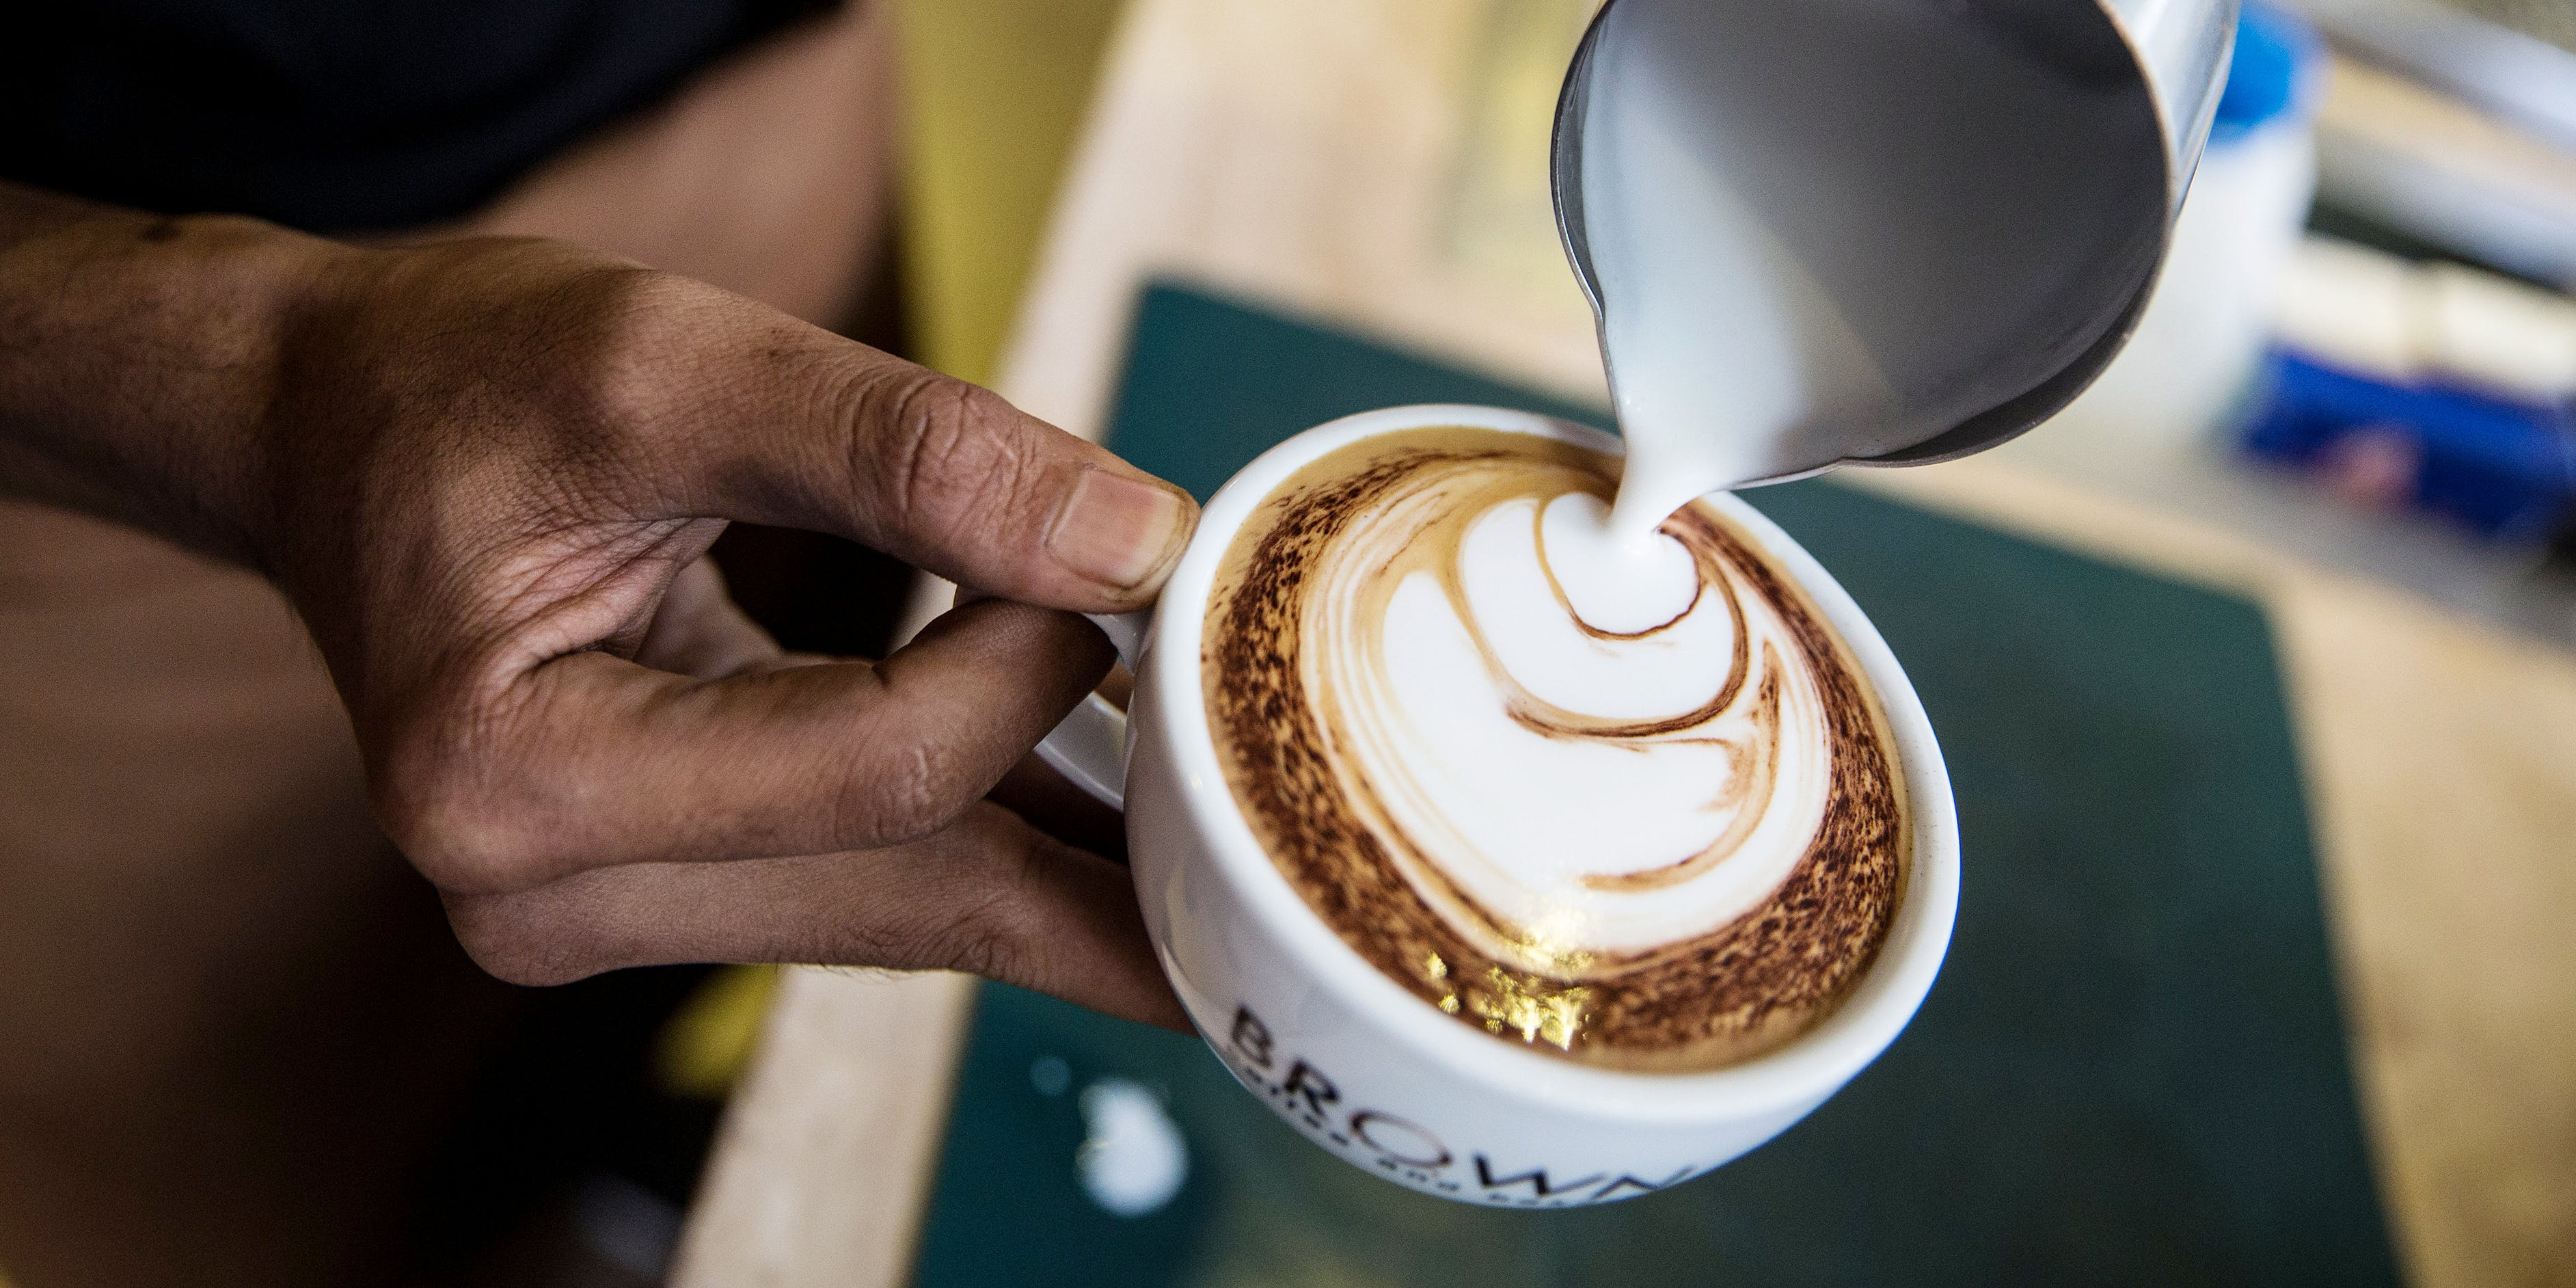 An employee makes coffee foam art inside a Brown Coffee Co. cafe at the T.K. Avenue shopping area in Phnom Penh, Cambodia, on Thursday, July 26, 2018. In this story, we report on how Canadian Coffee Chain Second Cup intends to convert some of its cafes into dispensaries.